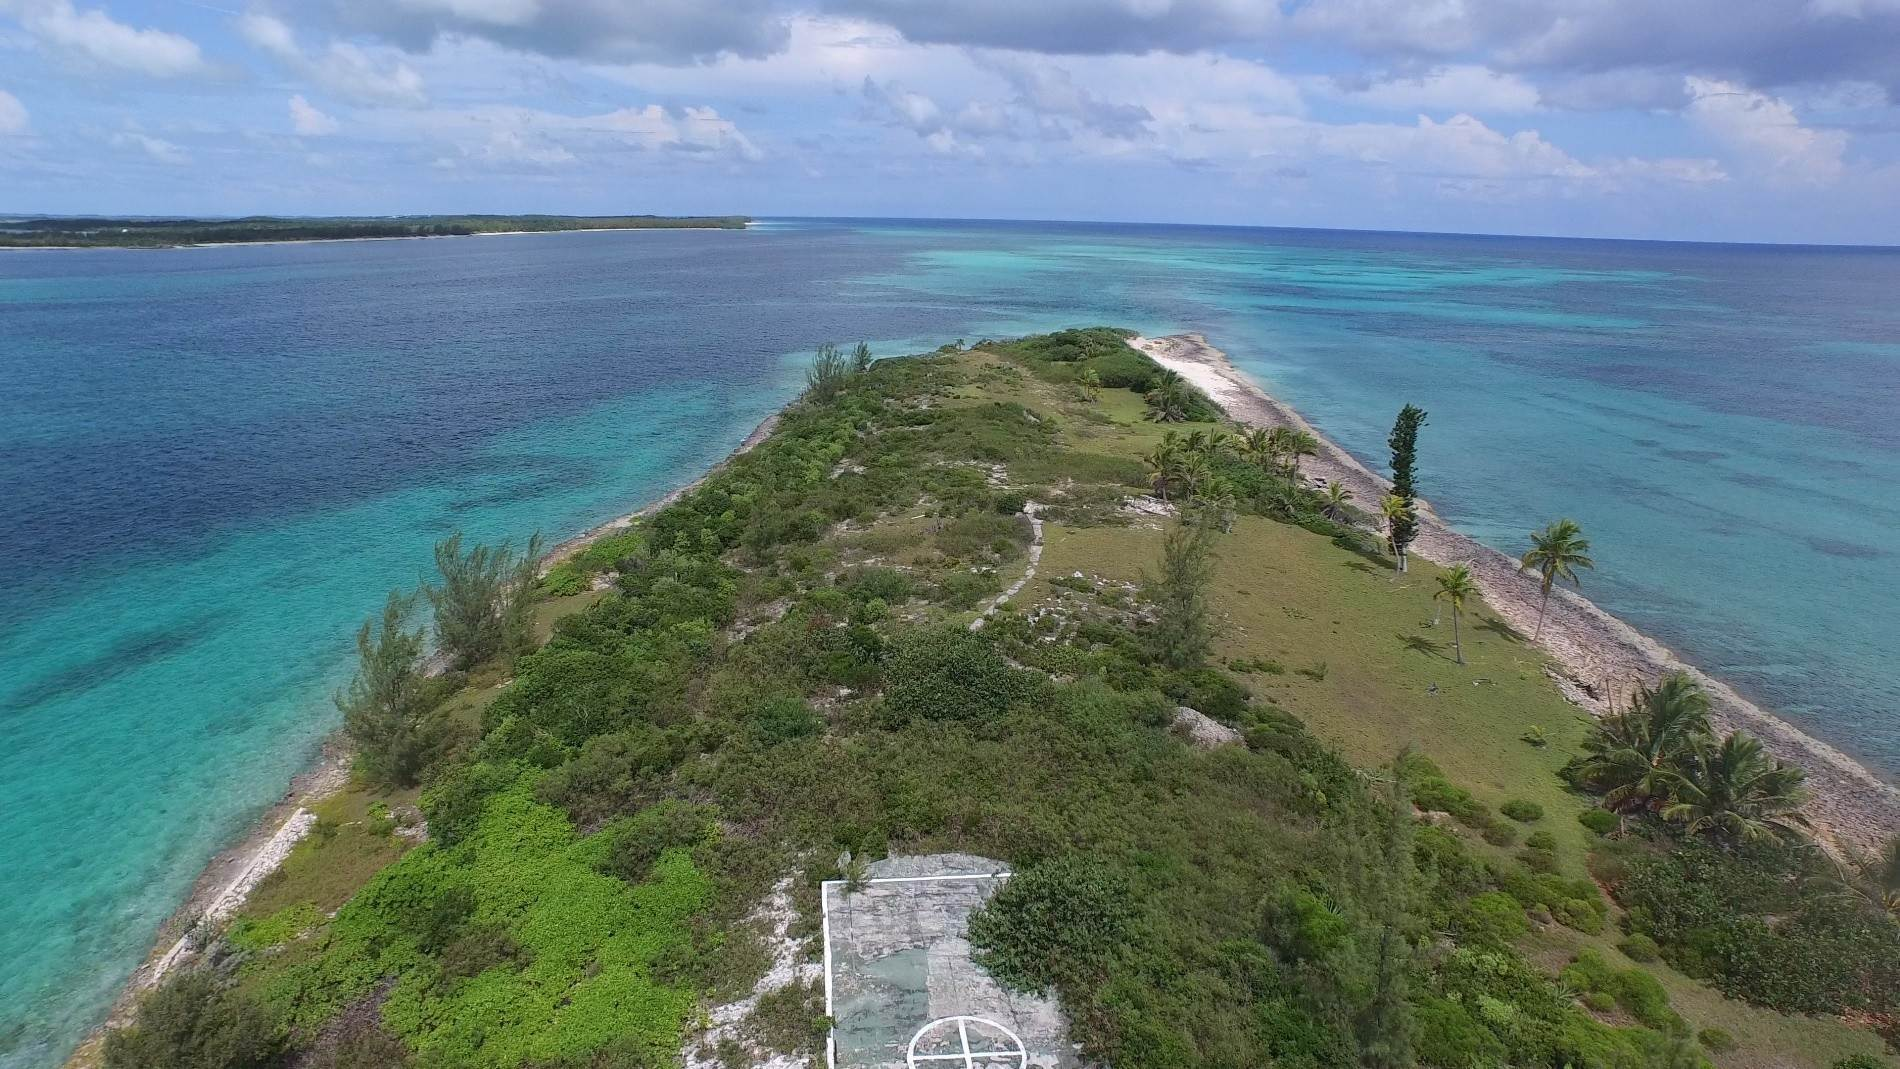 22. Private Islands for Sale at Pierre Island, A Perfect Private Retreat Island Near Harbour Island - MLS 40806 Harbour Island, Eleuthera, Bahamas